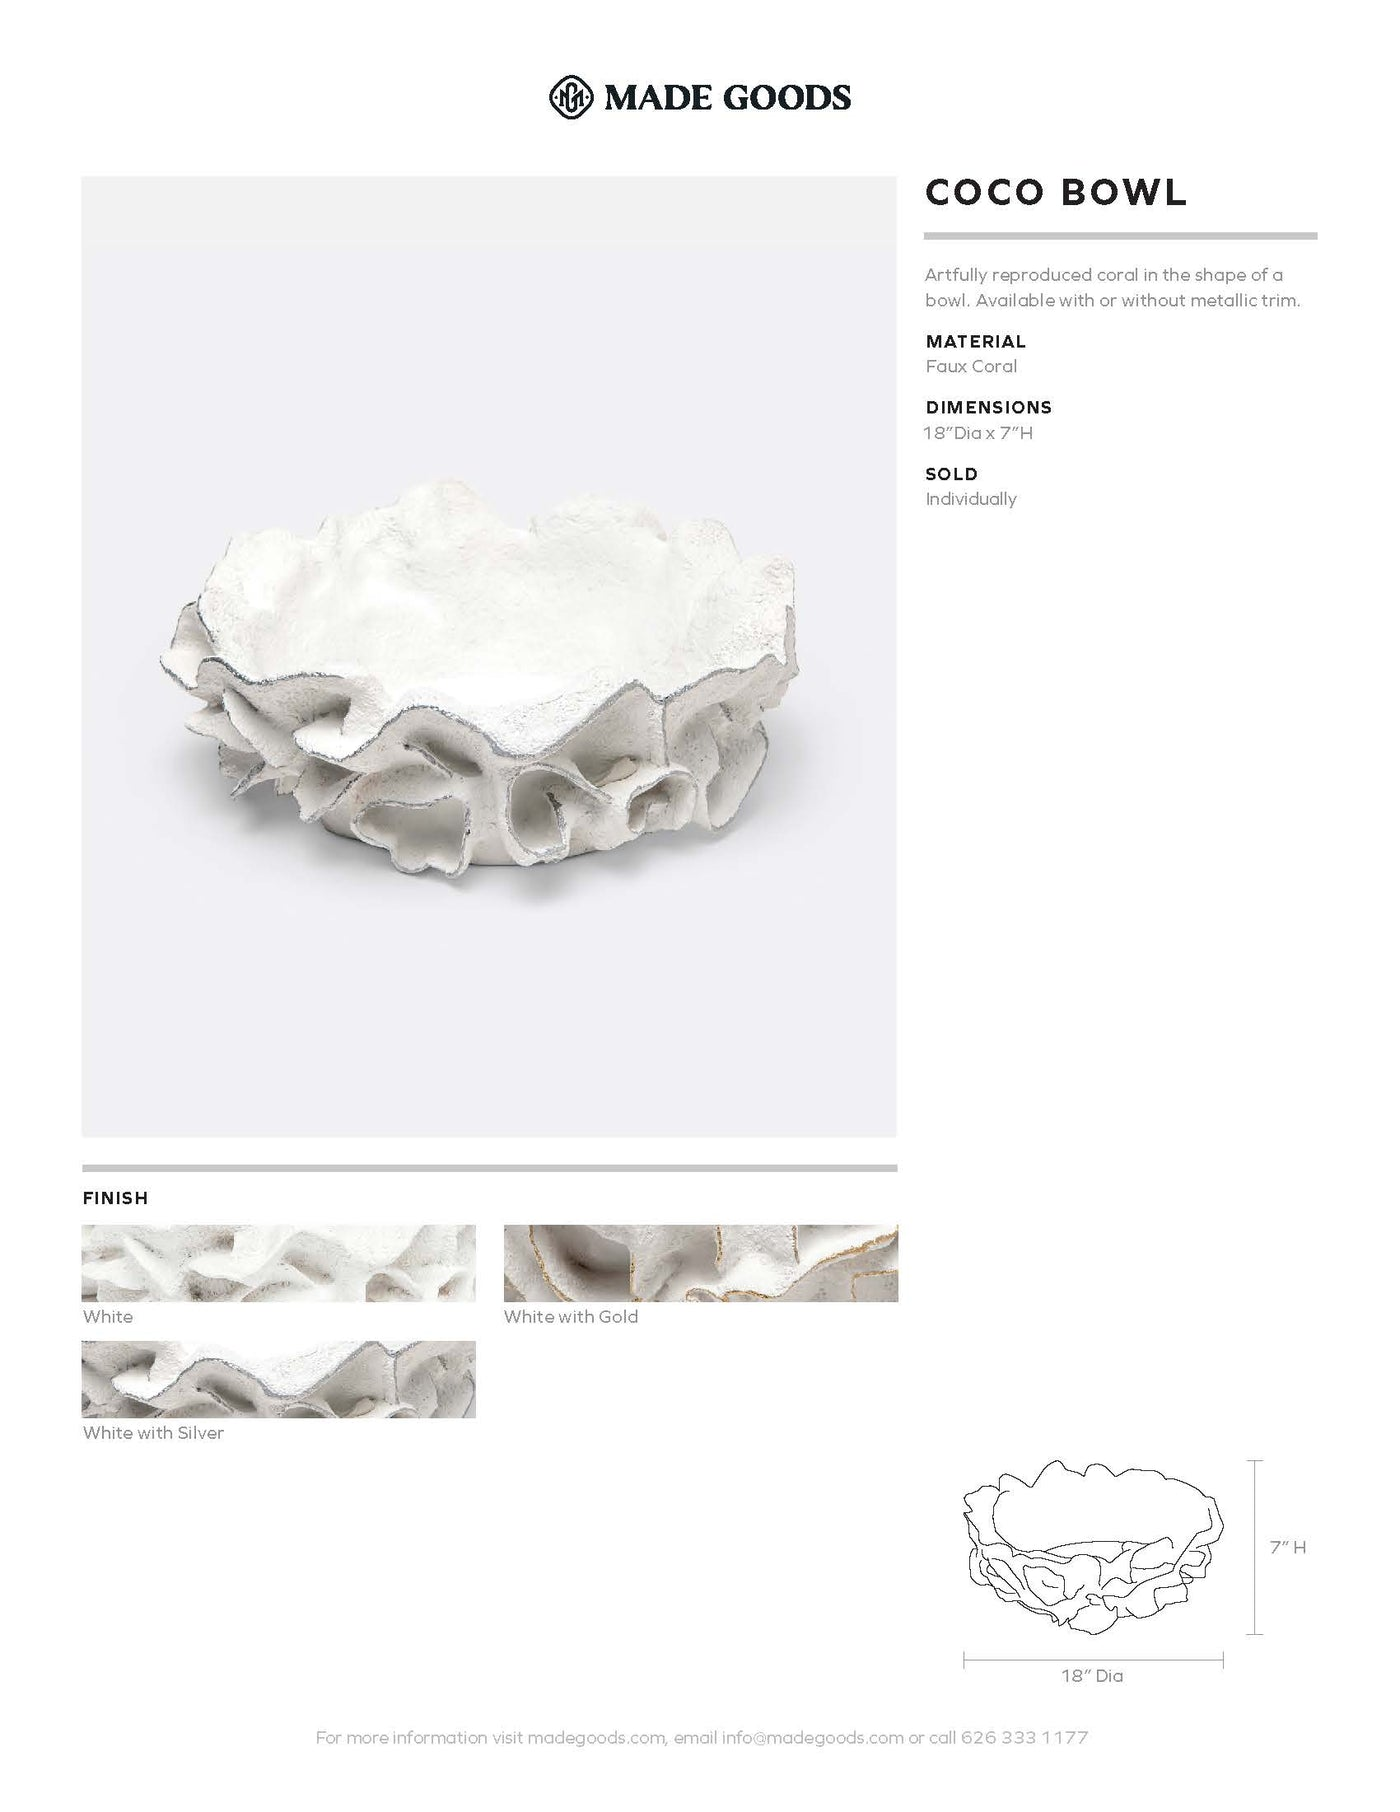 Made Goods Coco Bowl Tearsheet